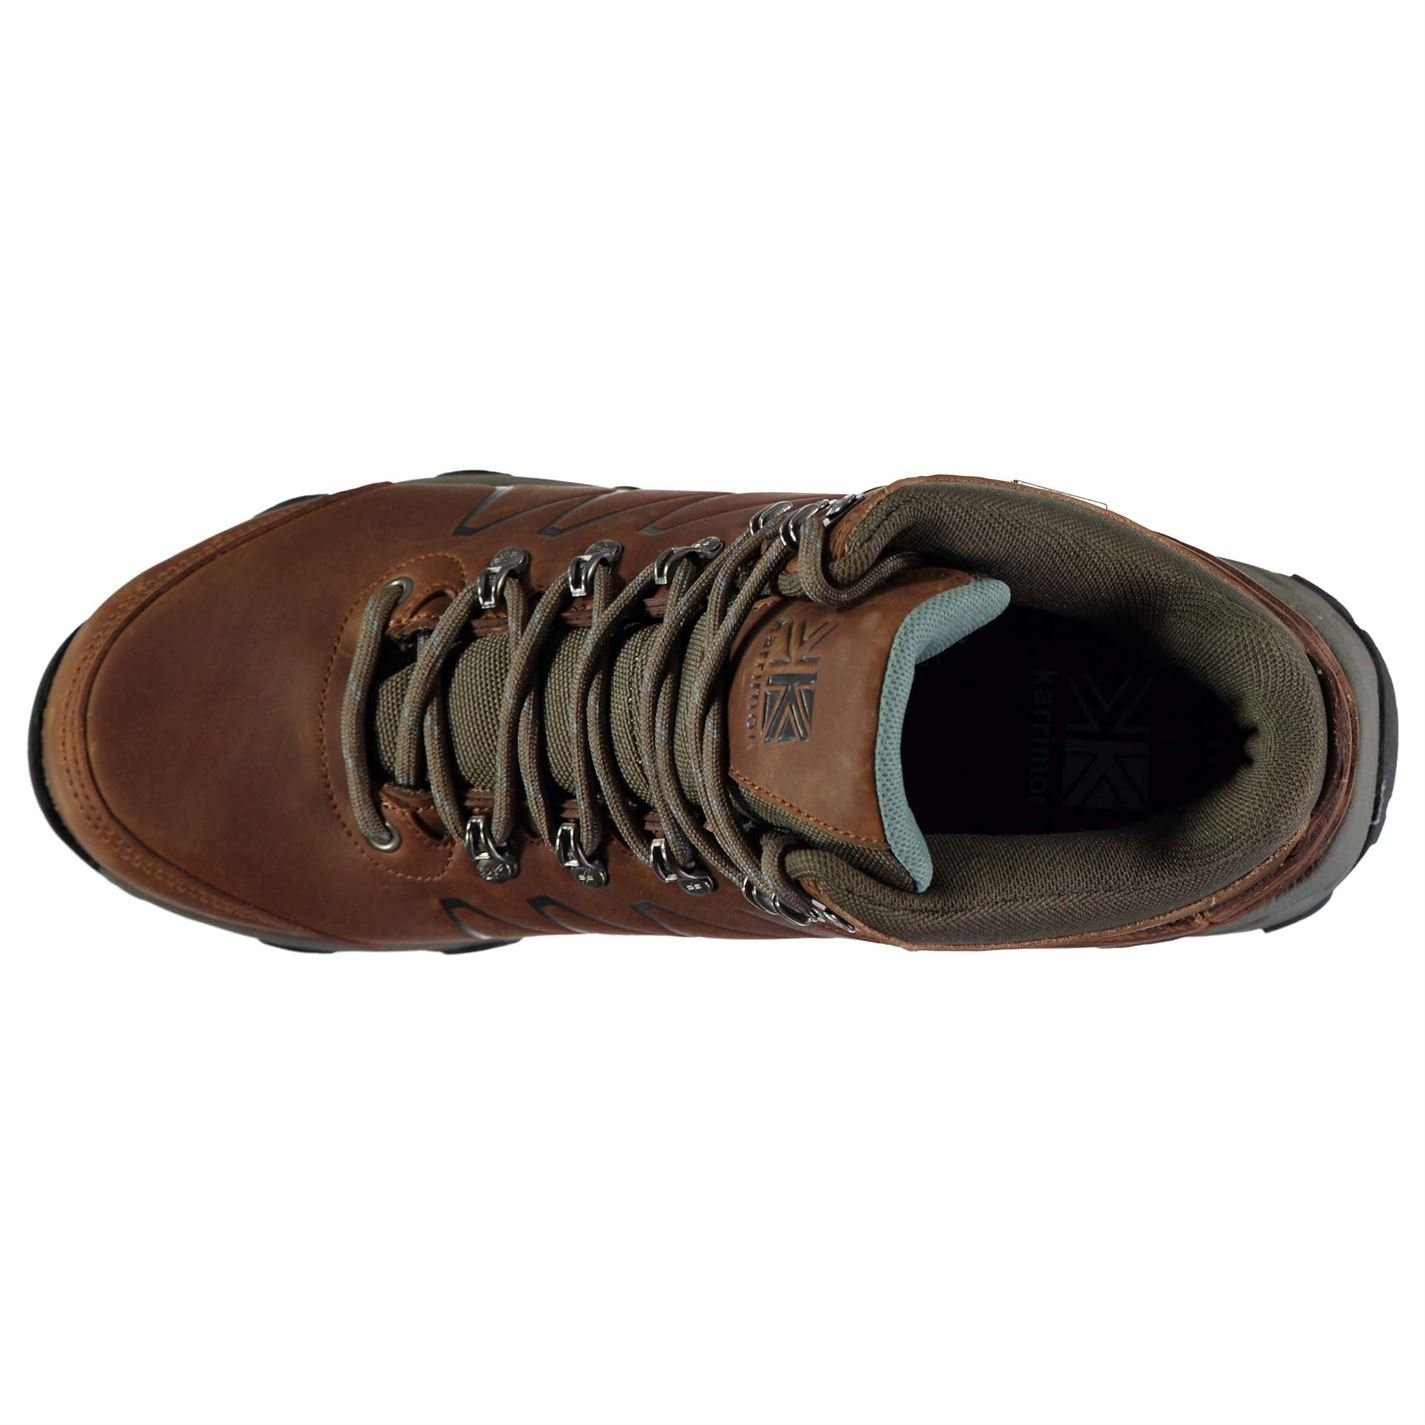 Karrimor Womens Dales Mid Walking Boots